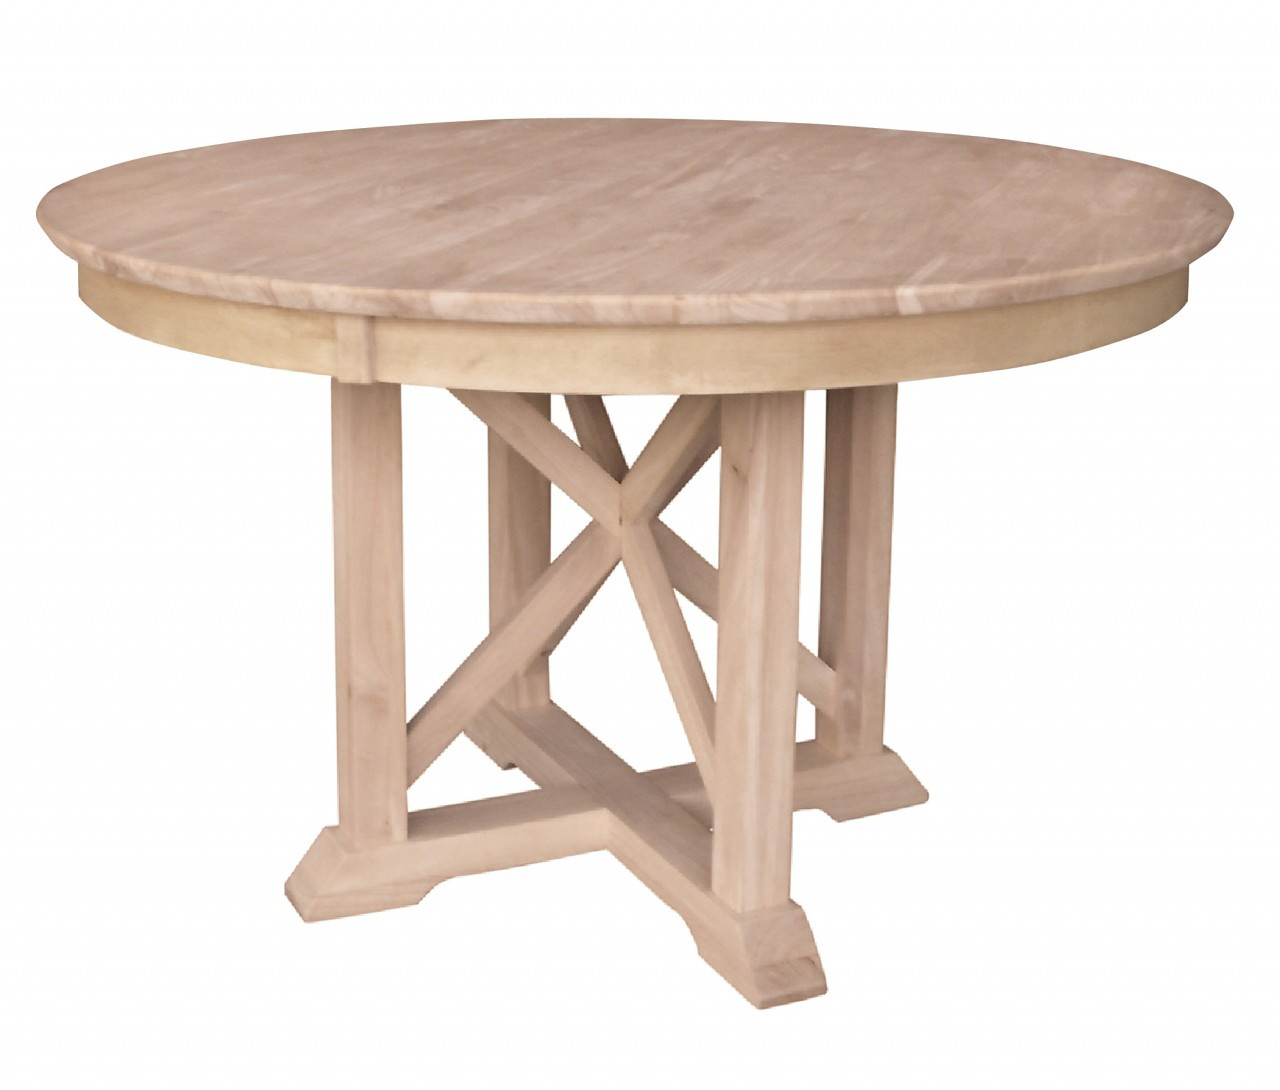 """Best ideas about Unfinished Dining Table . Save or Pin Unfinished Arlington Pedestal Table 48"""" Round x 30"""" h Now."""